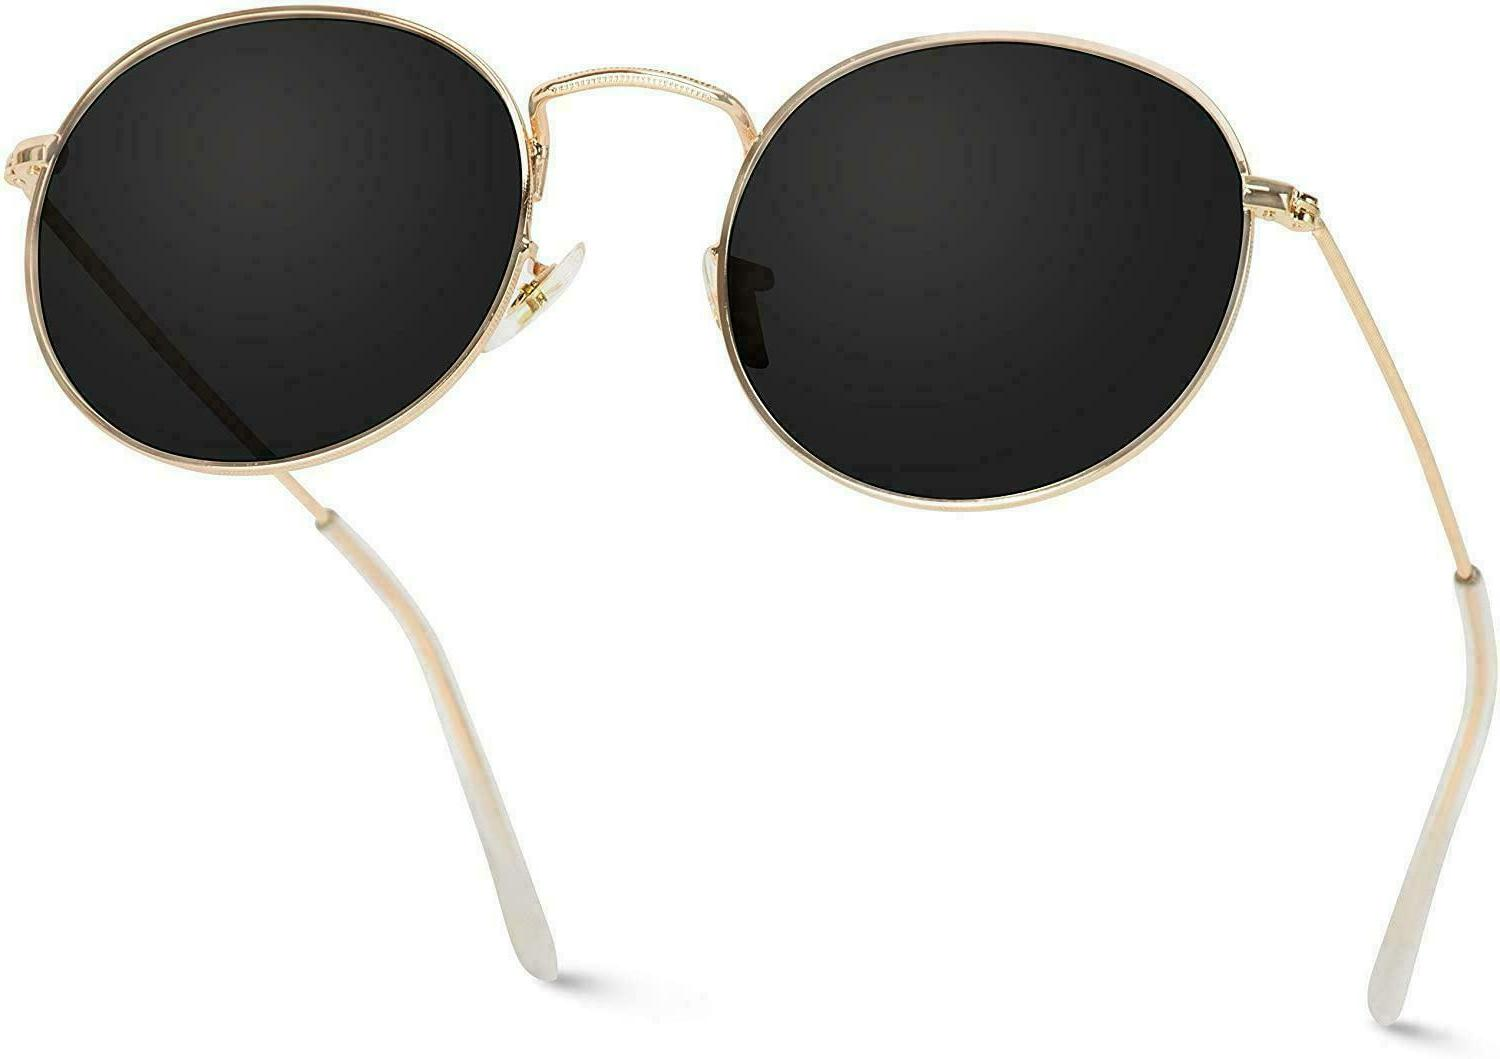 New WEARME GOLD FRAME SUNGLASSES Reflective Lens Round Trendy